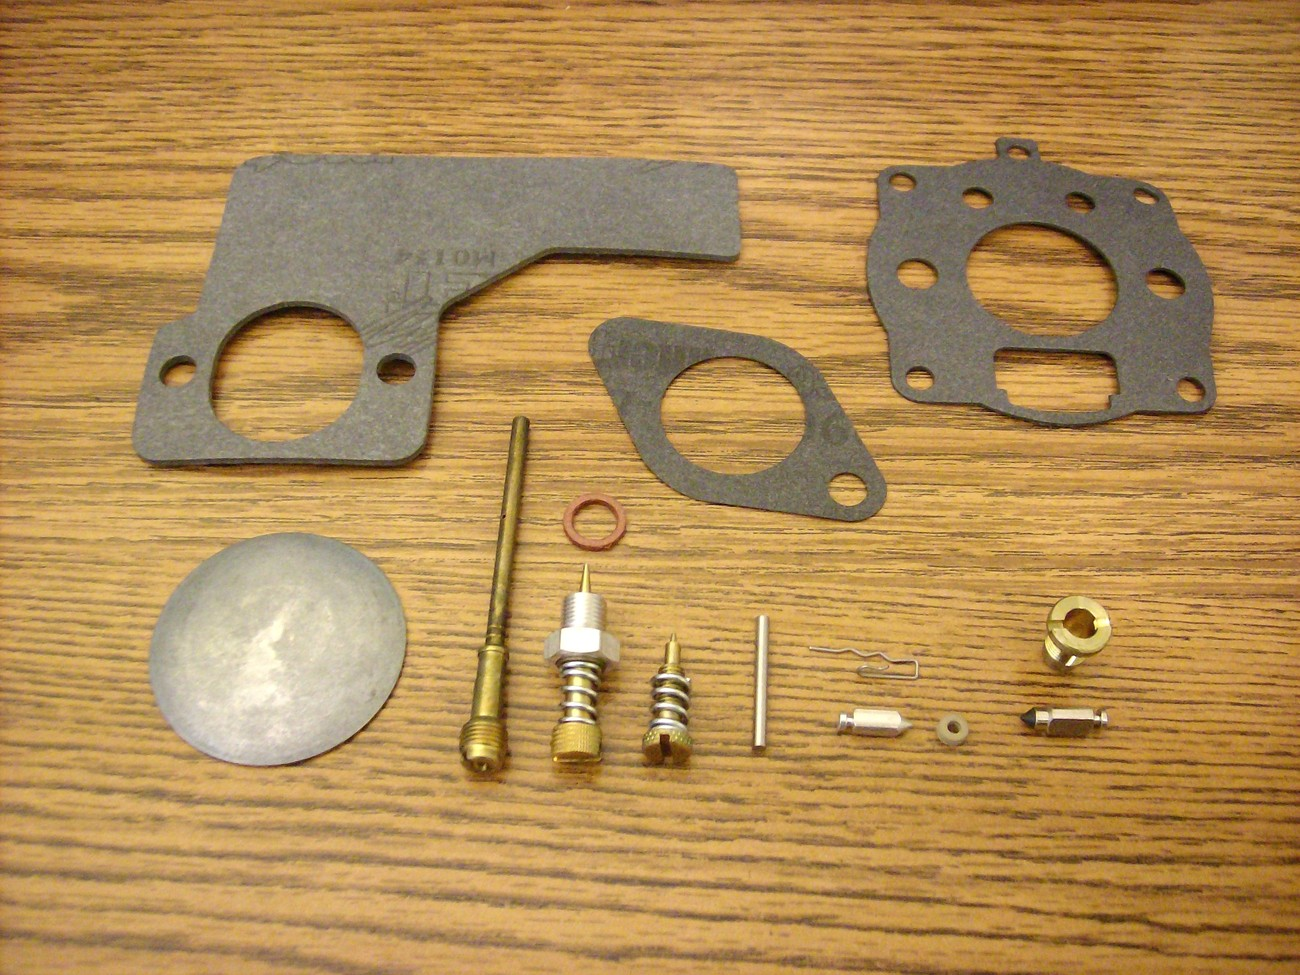 Tractor Carburetor Rebuilding : Snapper lawn mower carb carburetor rebuild kit repair